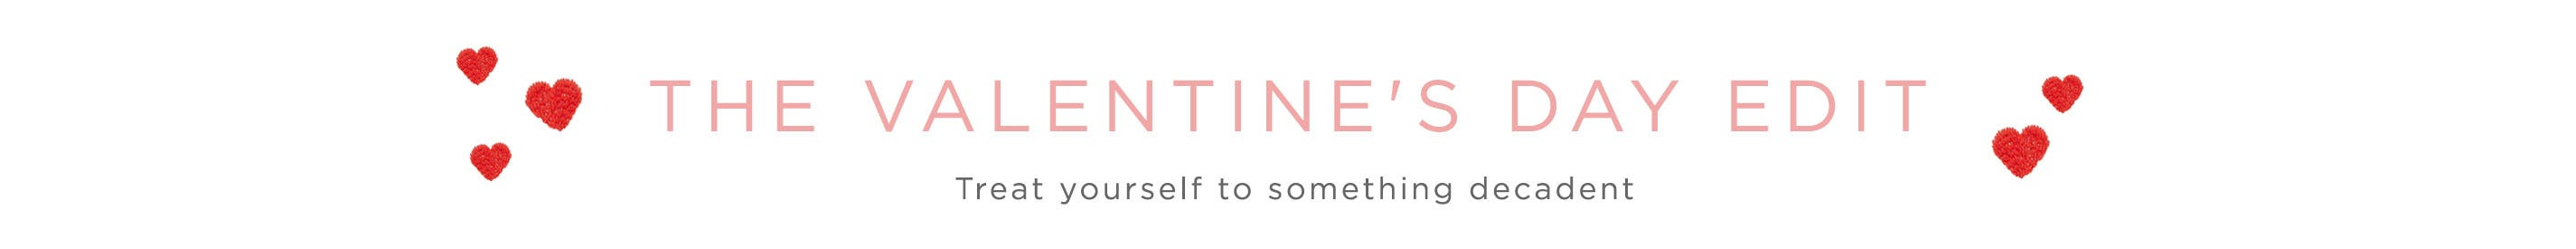 The Valentine's Day Edit - Treat Yourself to Something Decadent